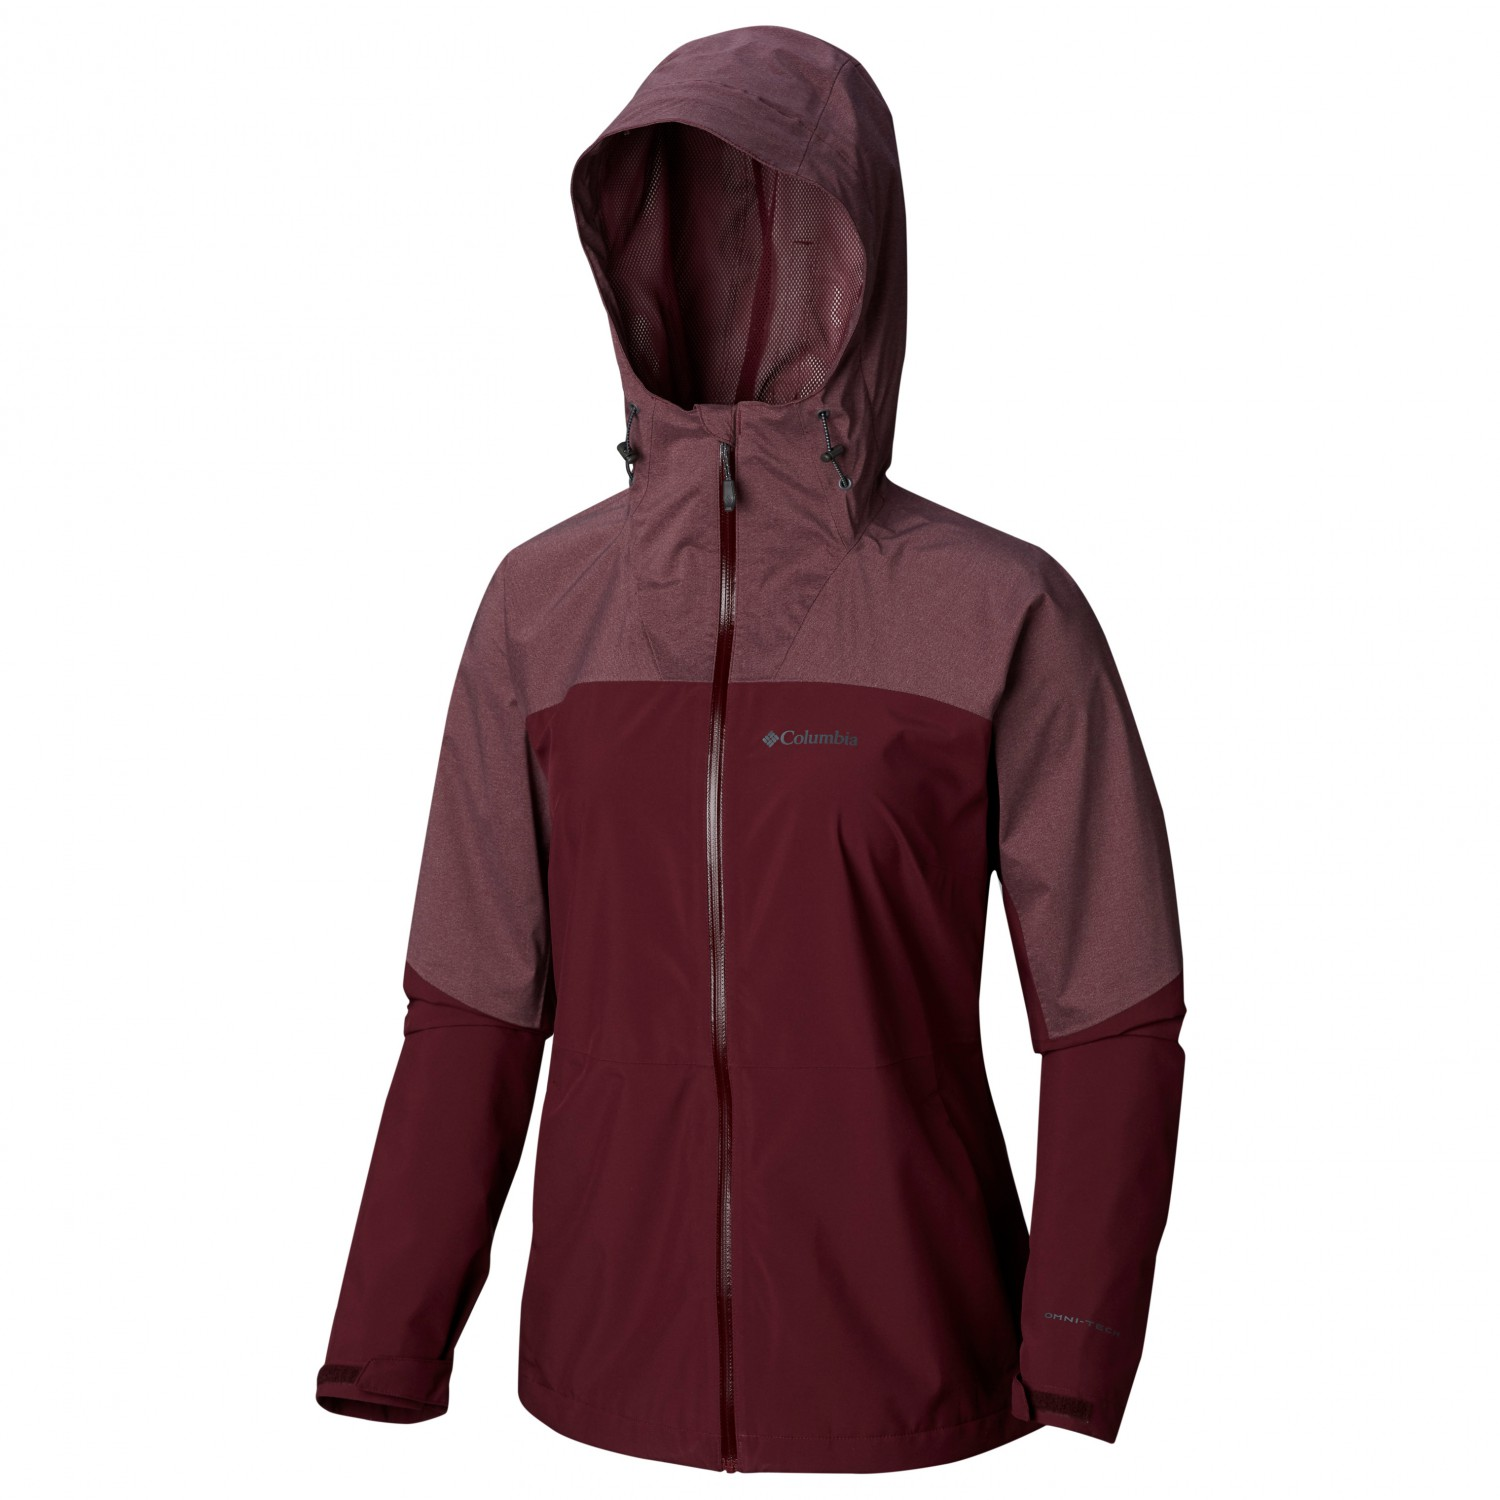 Columbia Women's Evolution Valley II Jacket Veste imperméable Nocturnal Nocturnal Heather | XS